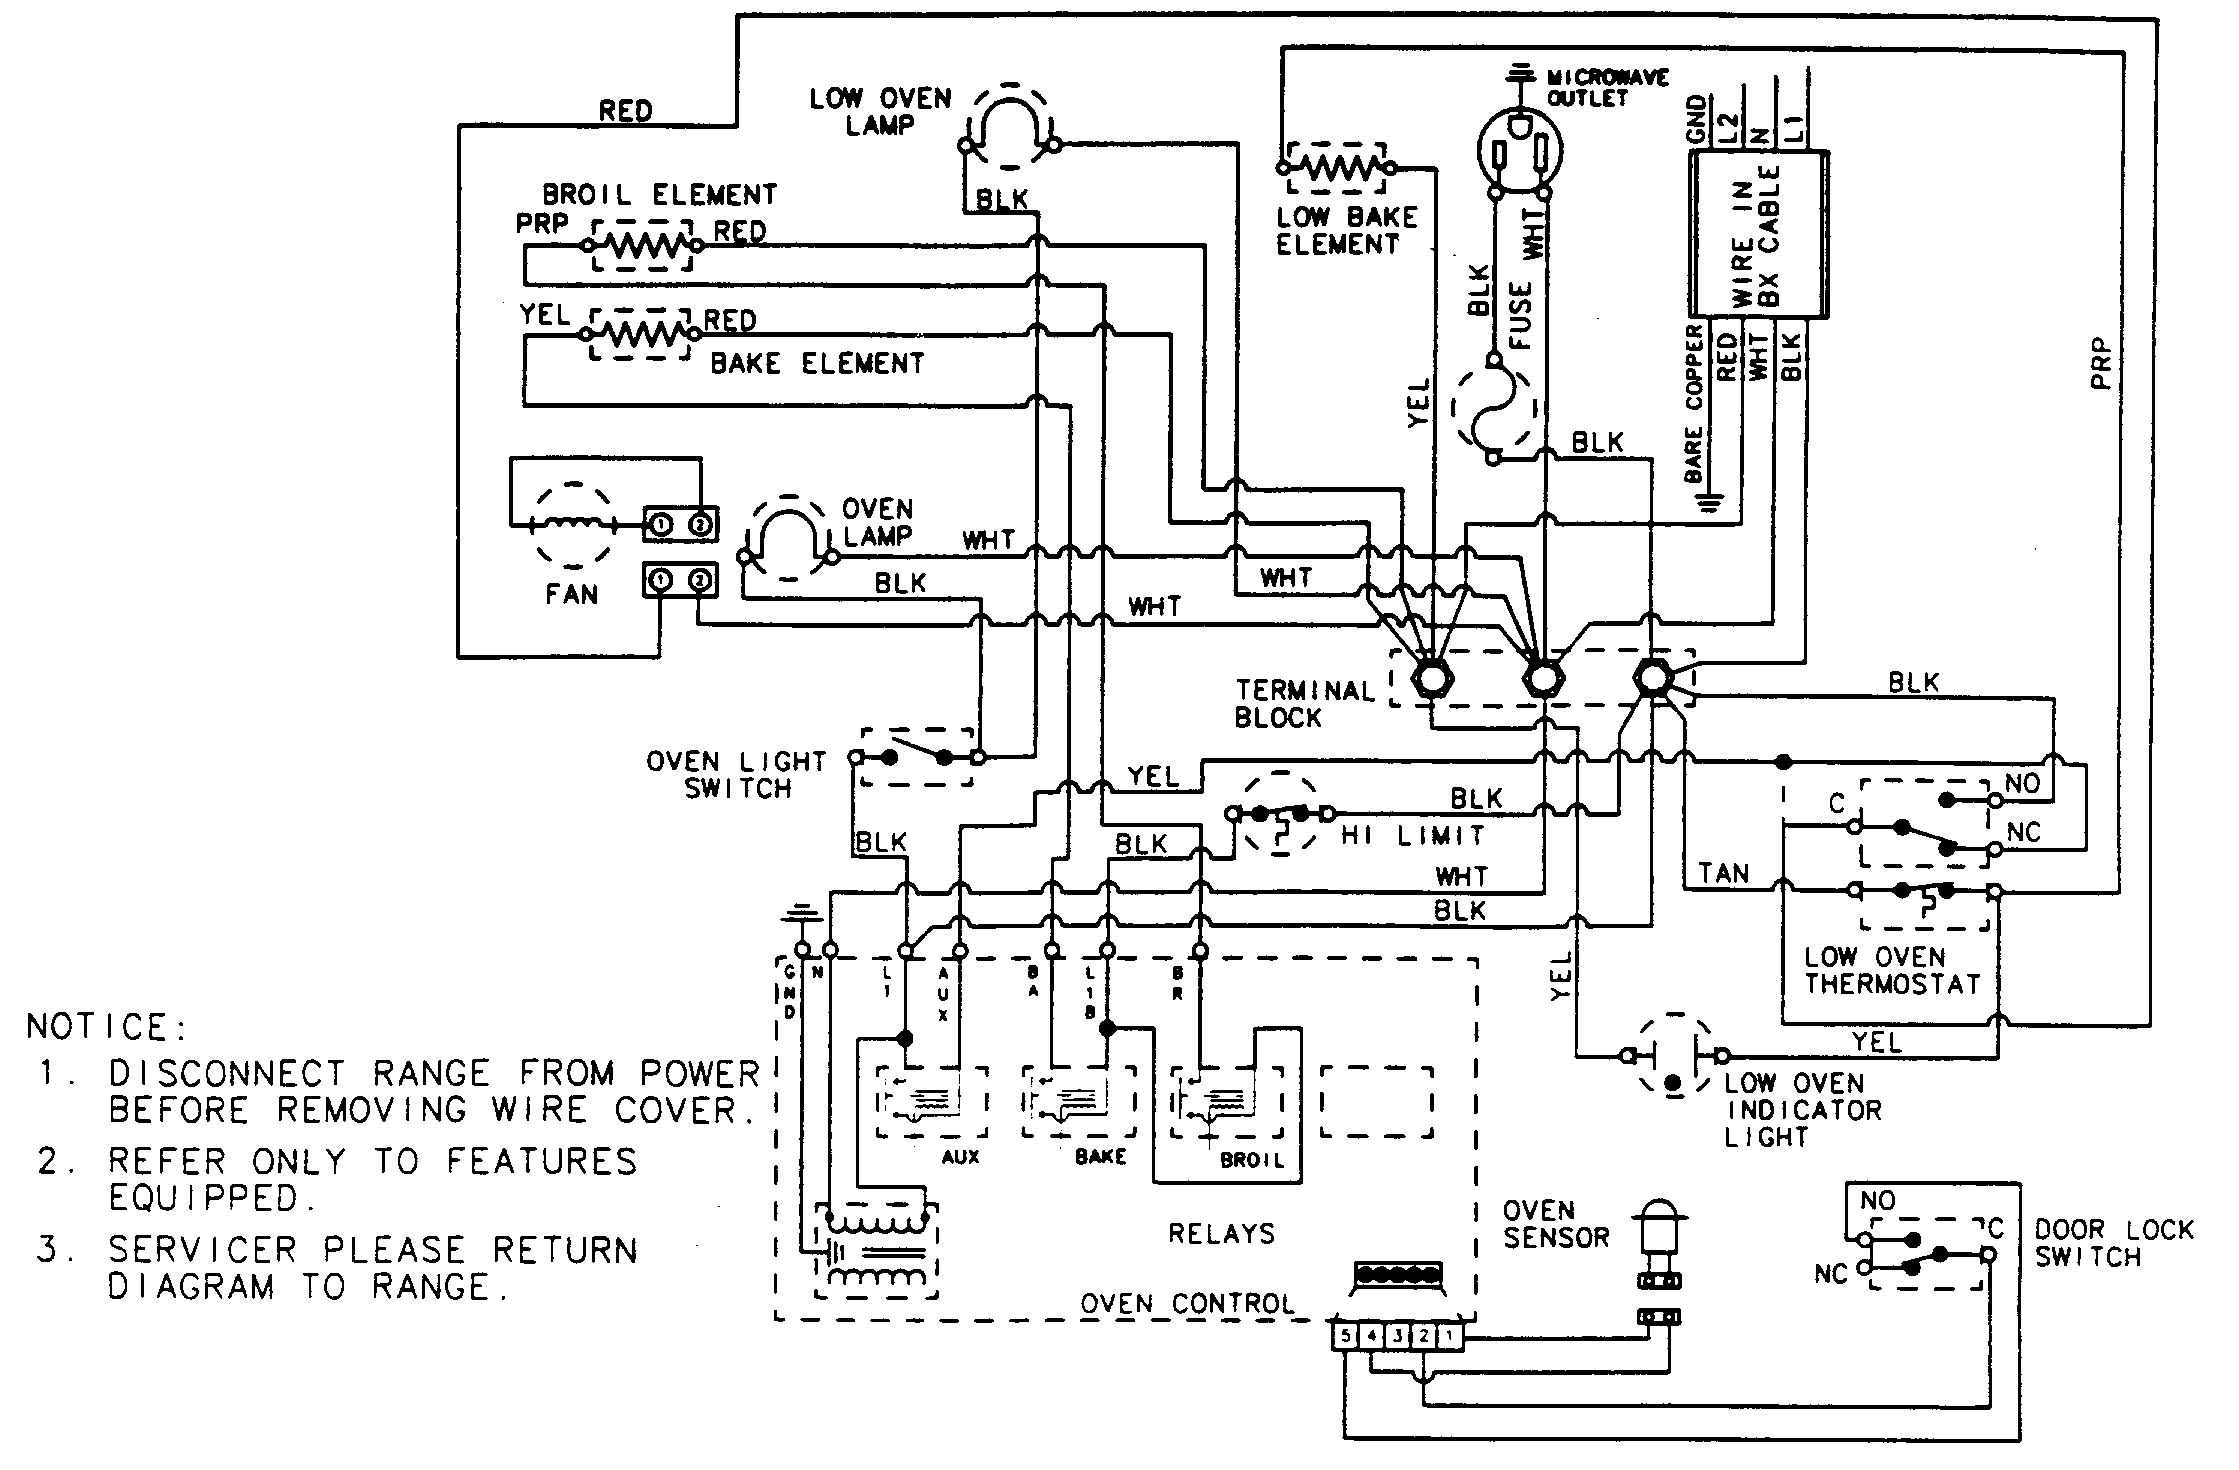 wiring information parts magic chef 9825vuv electric oven timer stove clocks and hotpoint oven bake element wiring diagram at soozxer.org